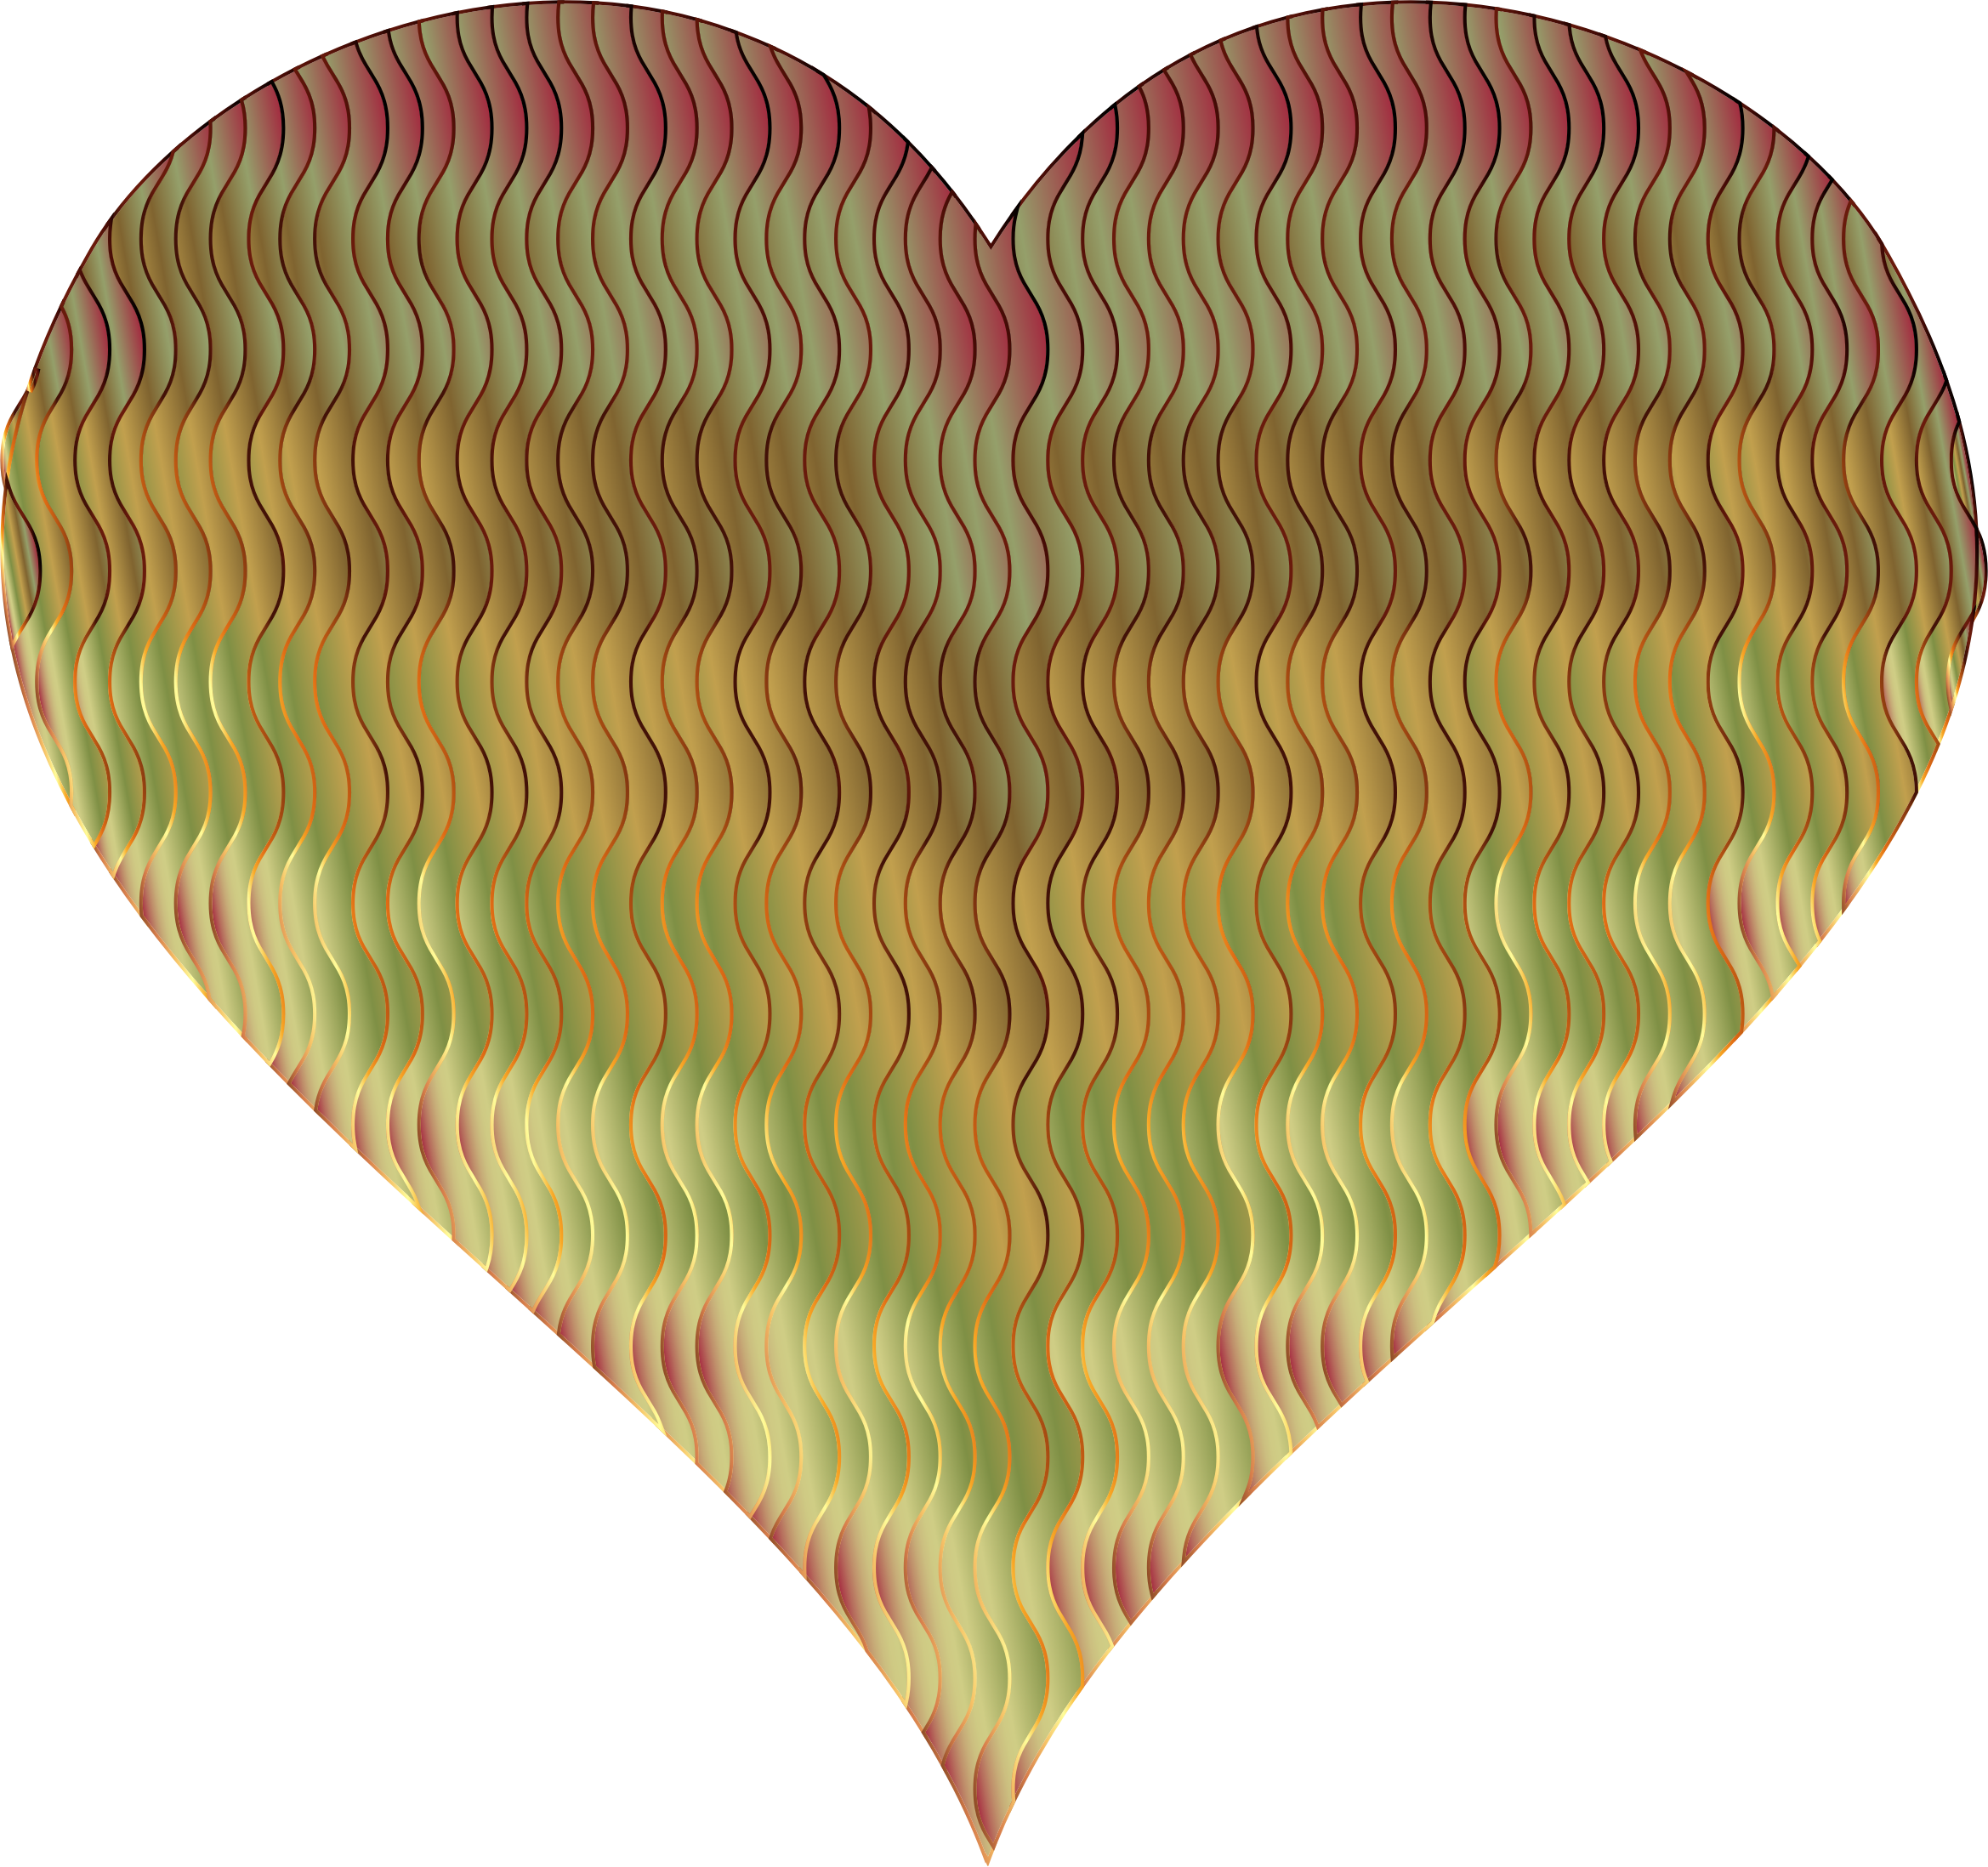 Colorful Wavy Heart 11 by GDJ